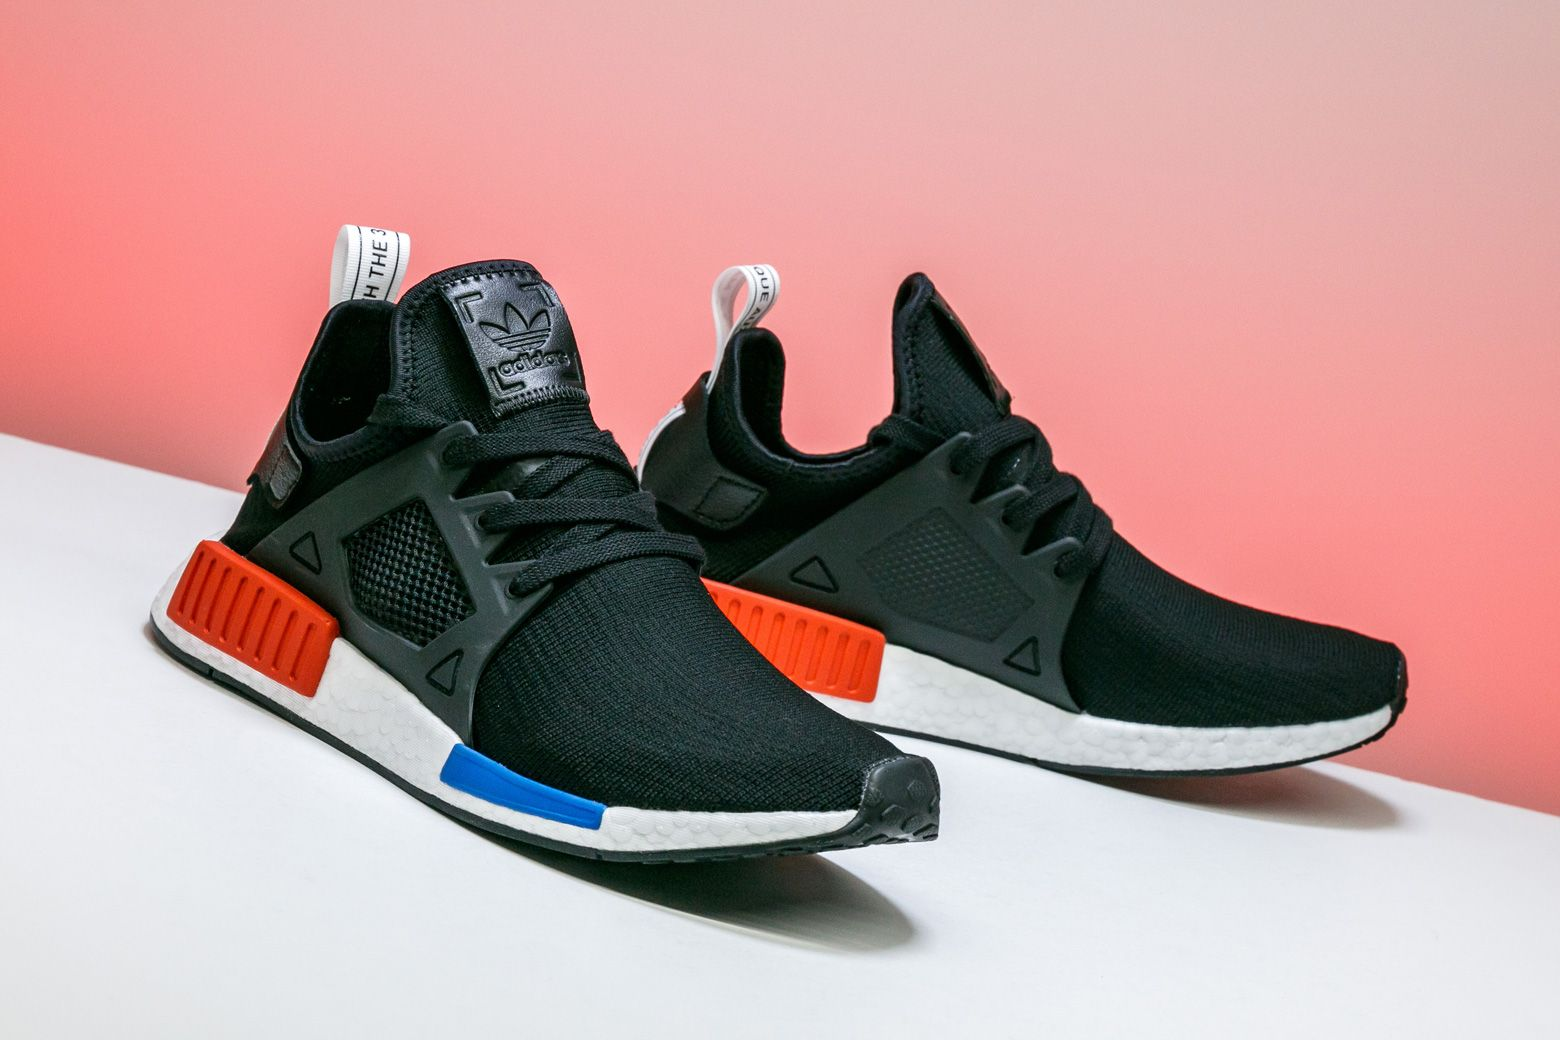 99d1712aa adidas brings the original NMD motif to this fresh 2017 NMD XR1 release.